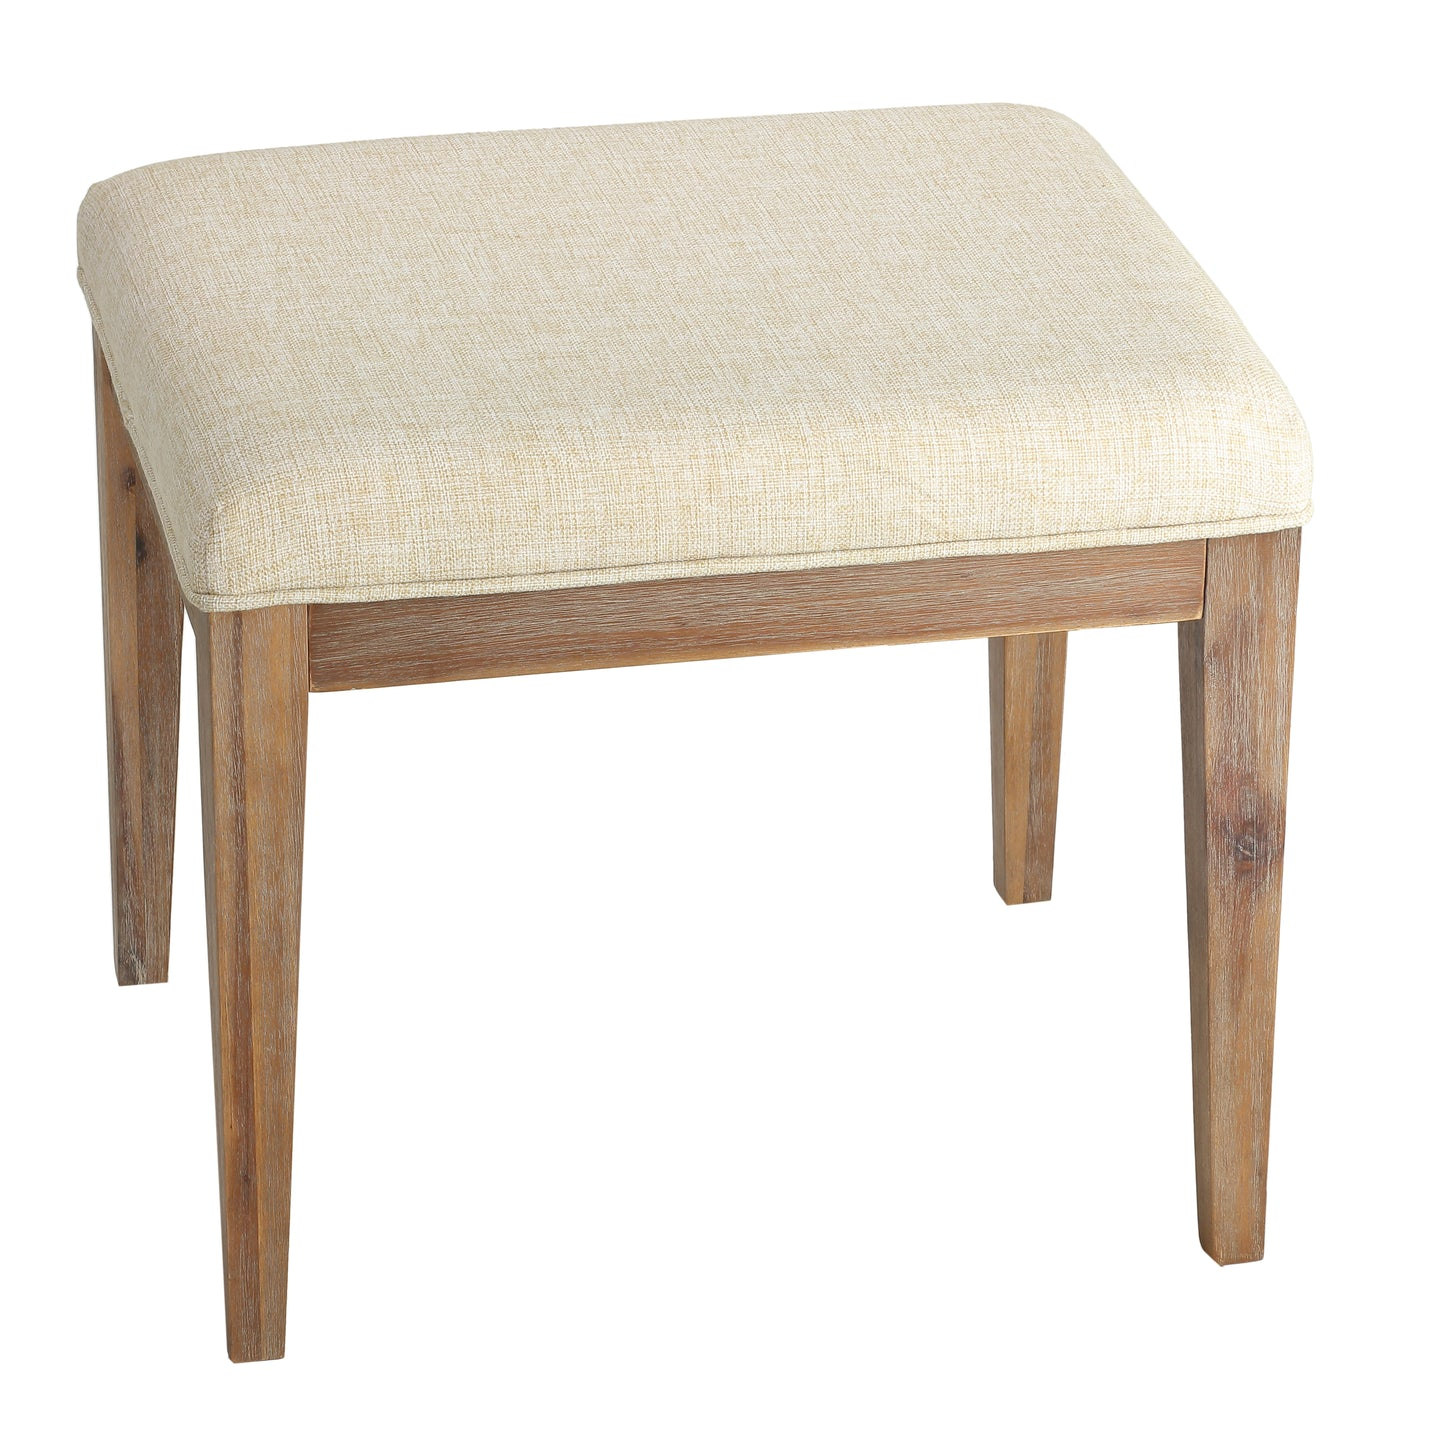 Cortesi Home Onel Vanity Bench with Neutral Linen Fabric, 20